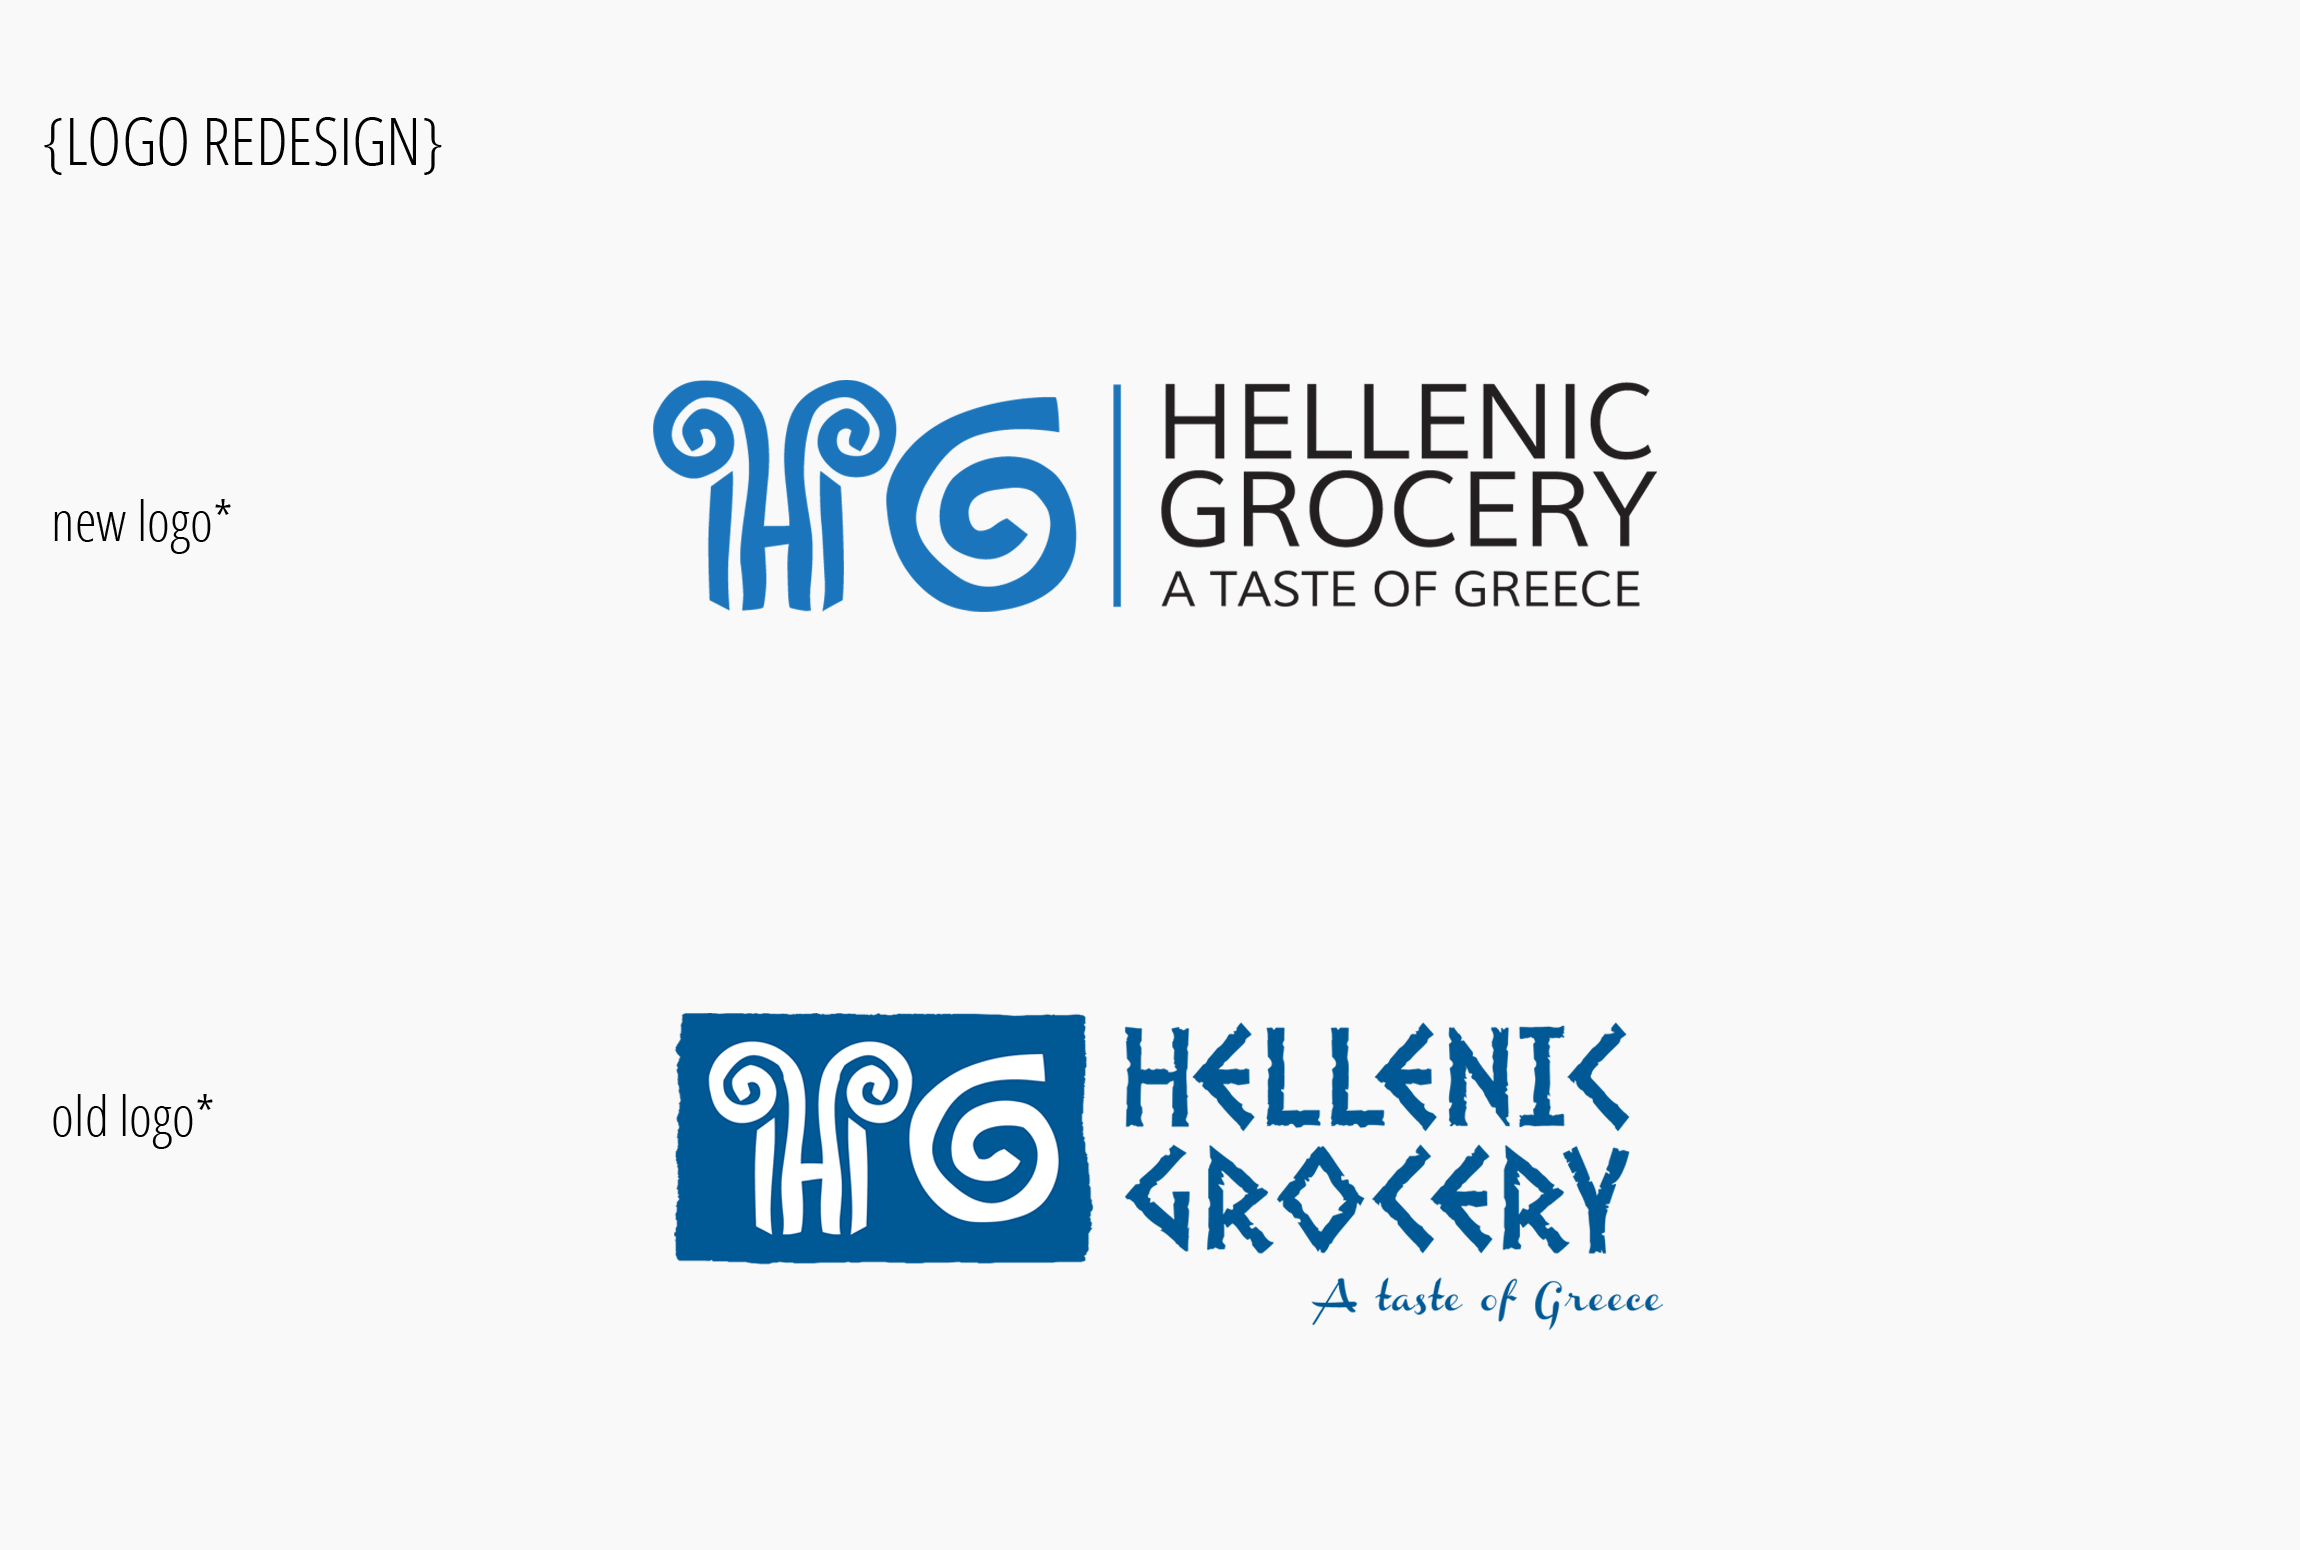 Hellenic grocery logo redesign